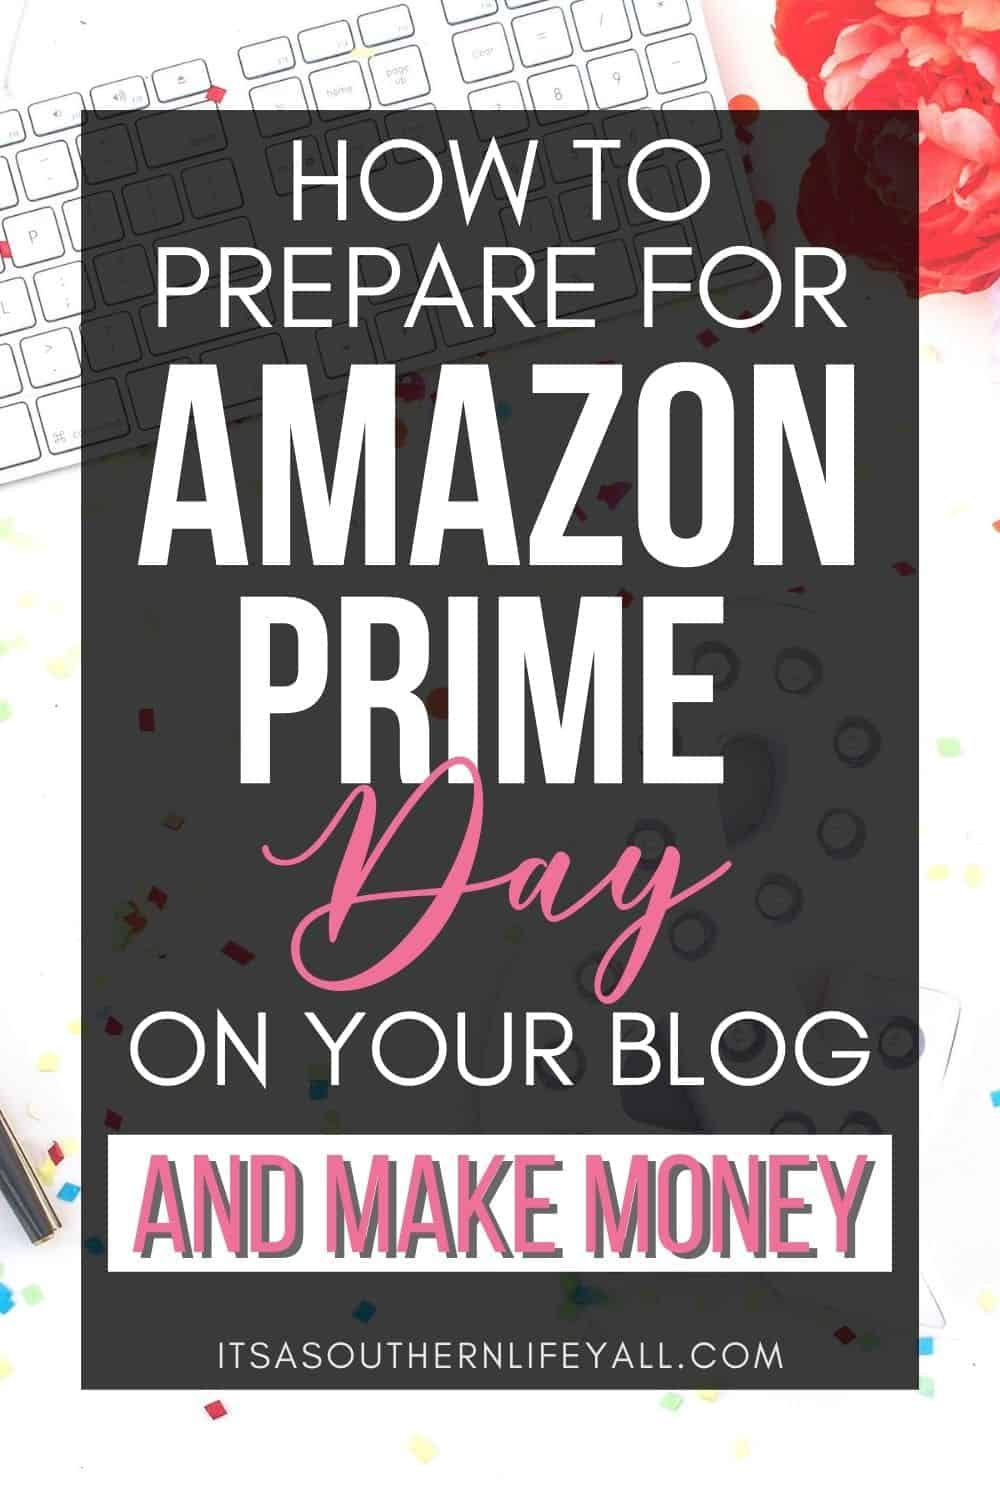 How To Prepare For Amazon Prime Day On Your Blog